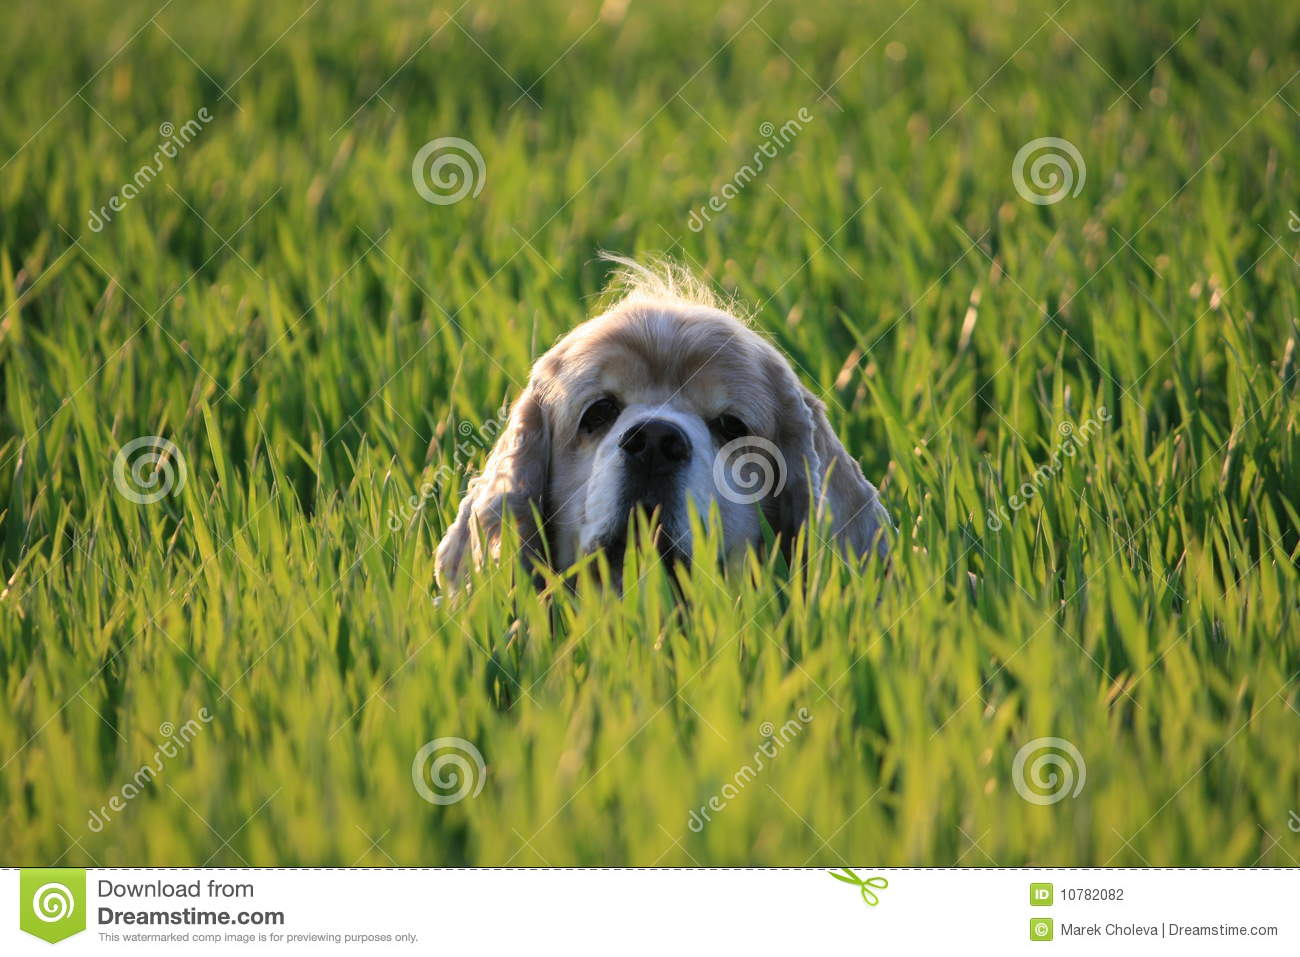 Hond in gras